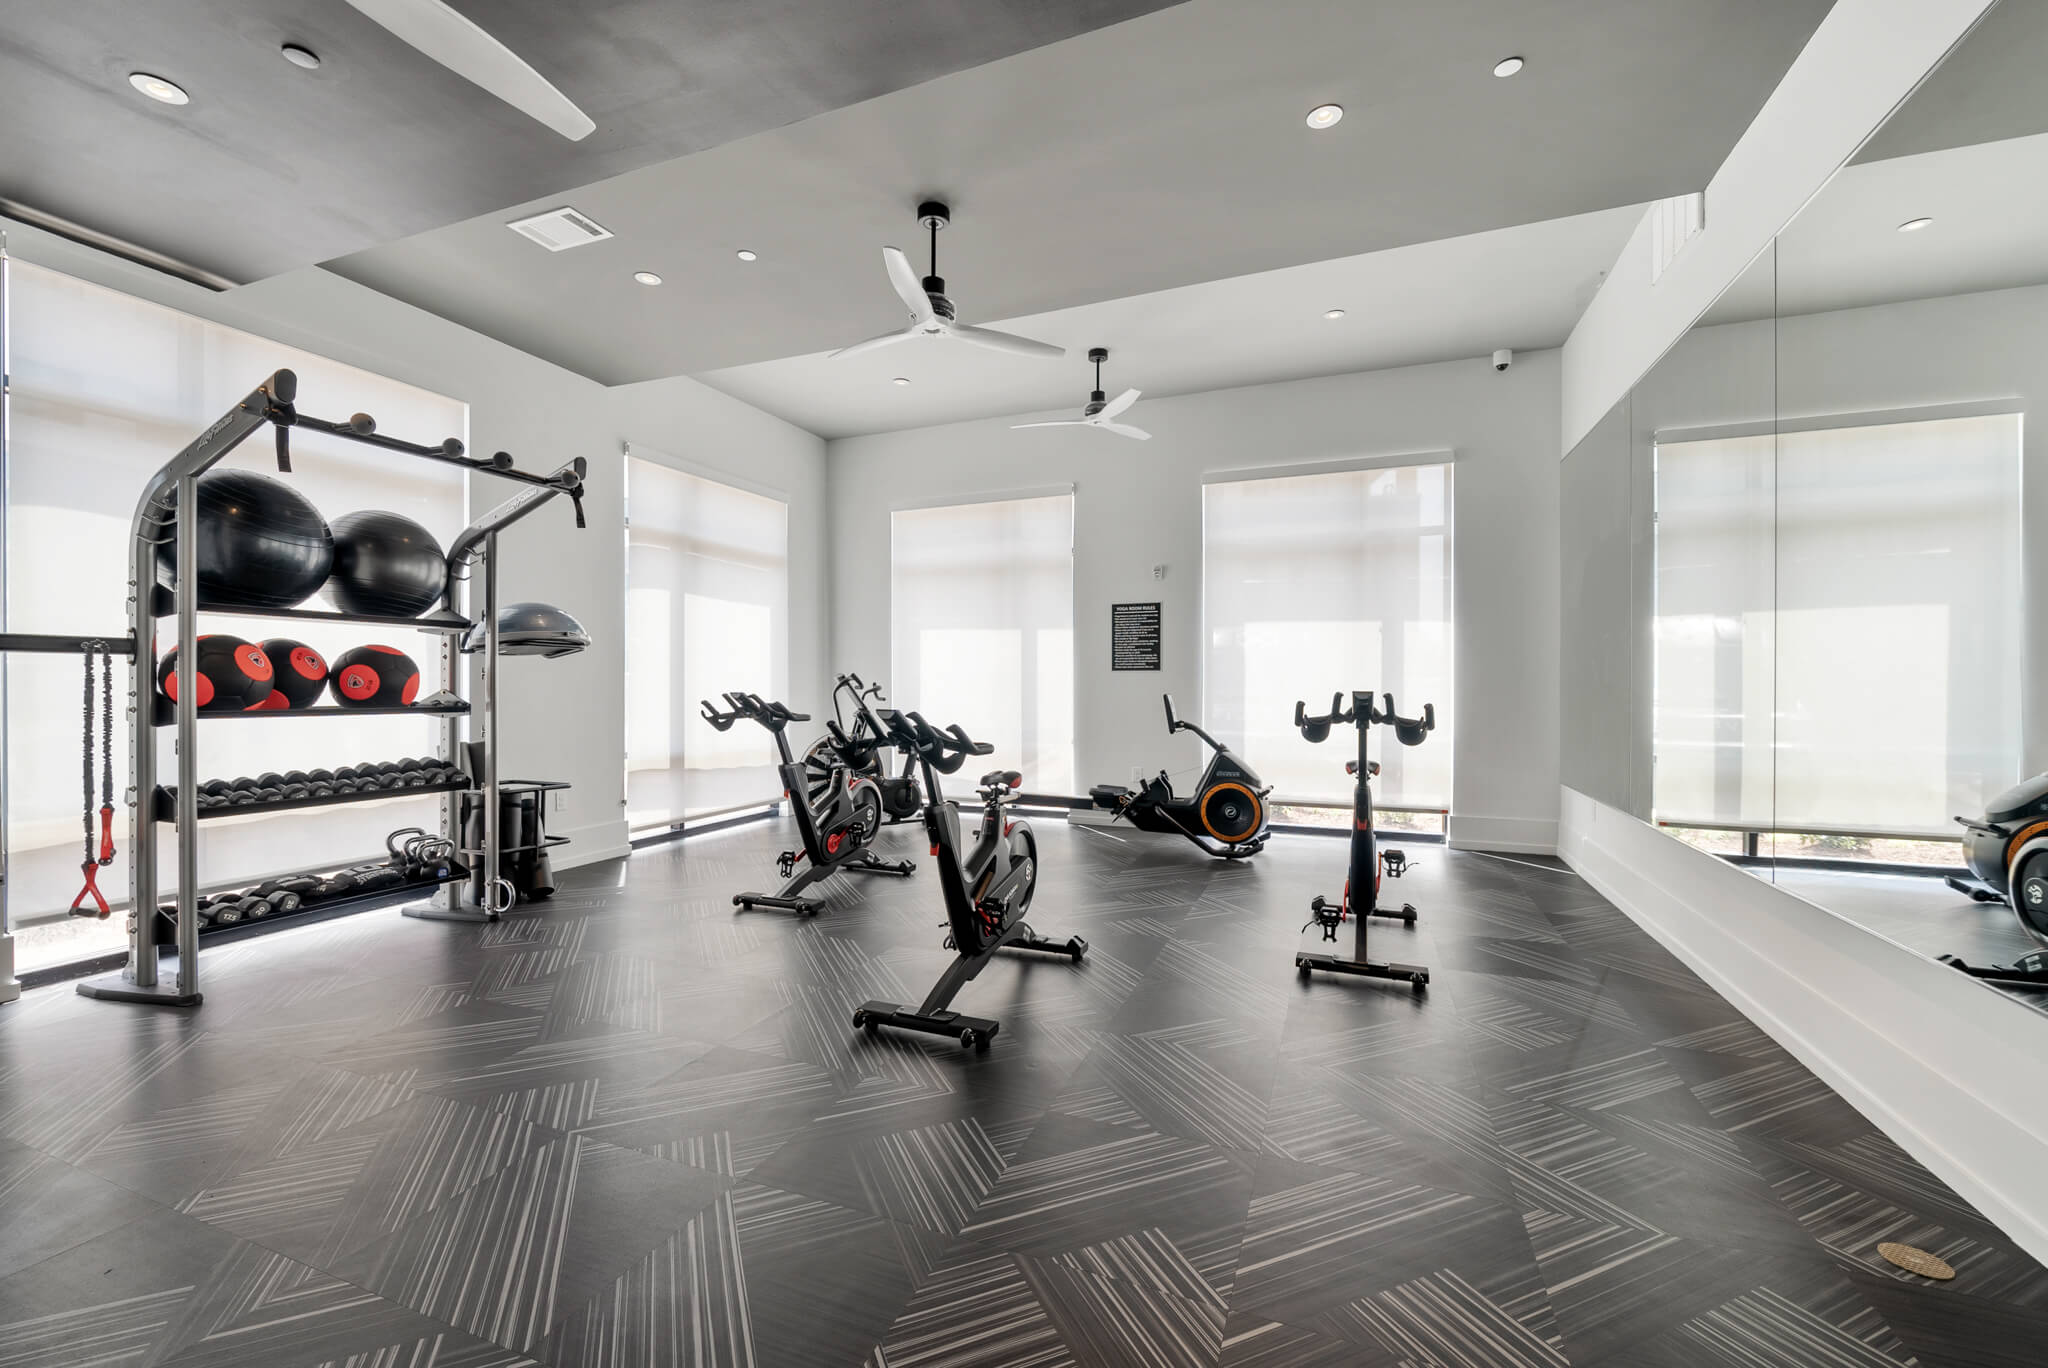 Fitness Center with 3 fitness bikes